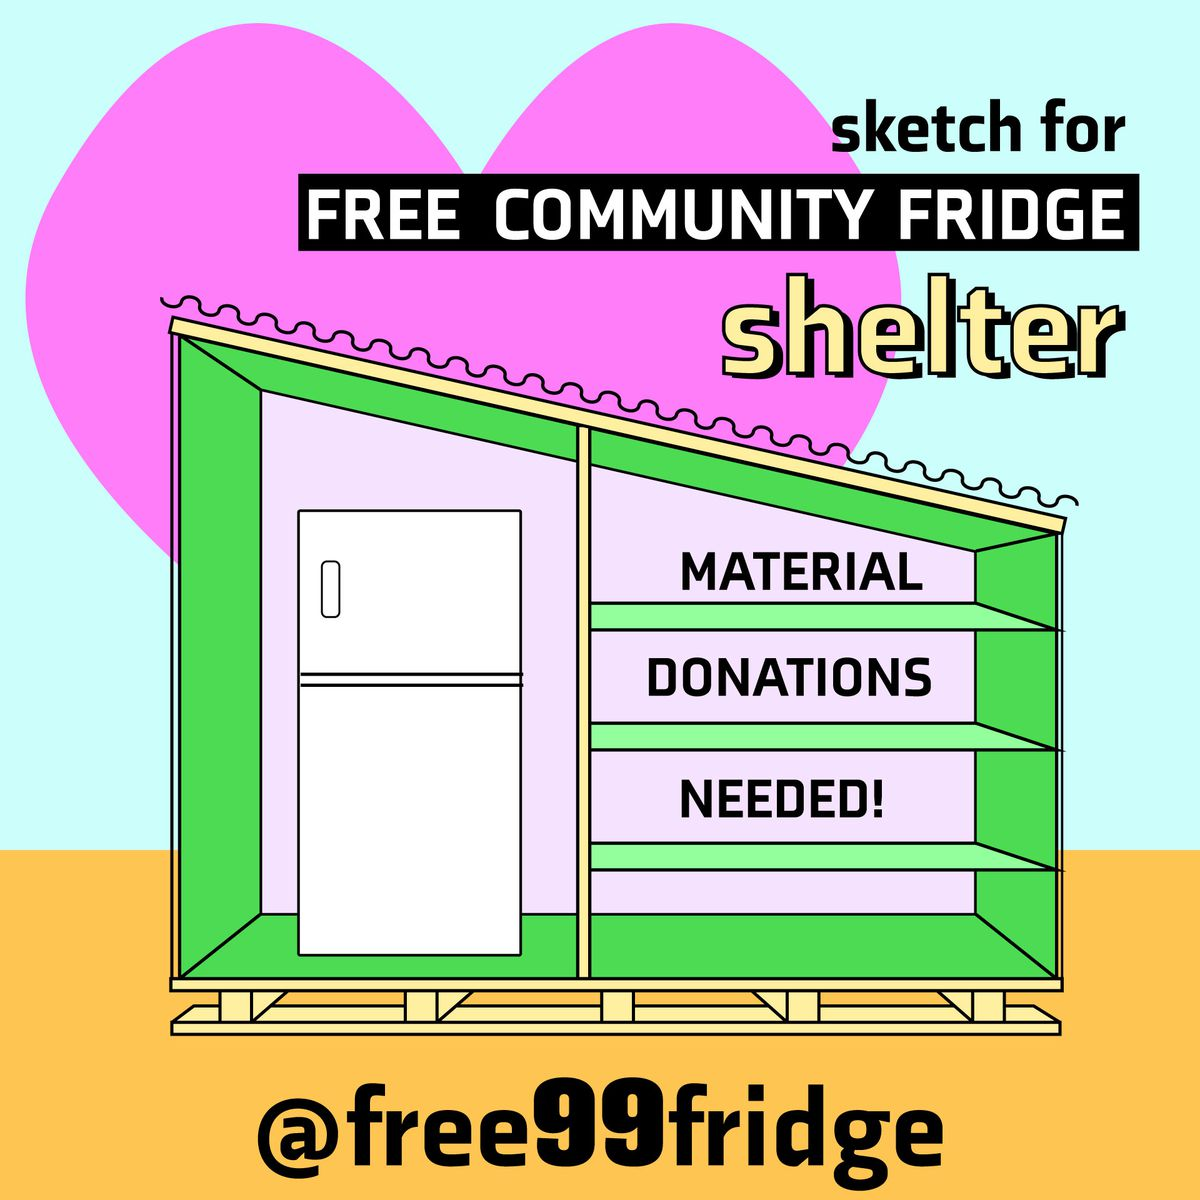 """A sketch of community free refrigerator showing a green shed with a refrigerator on the left and three shelves on the right with words """"Material Donations Needed"""""""